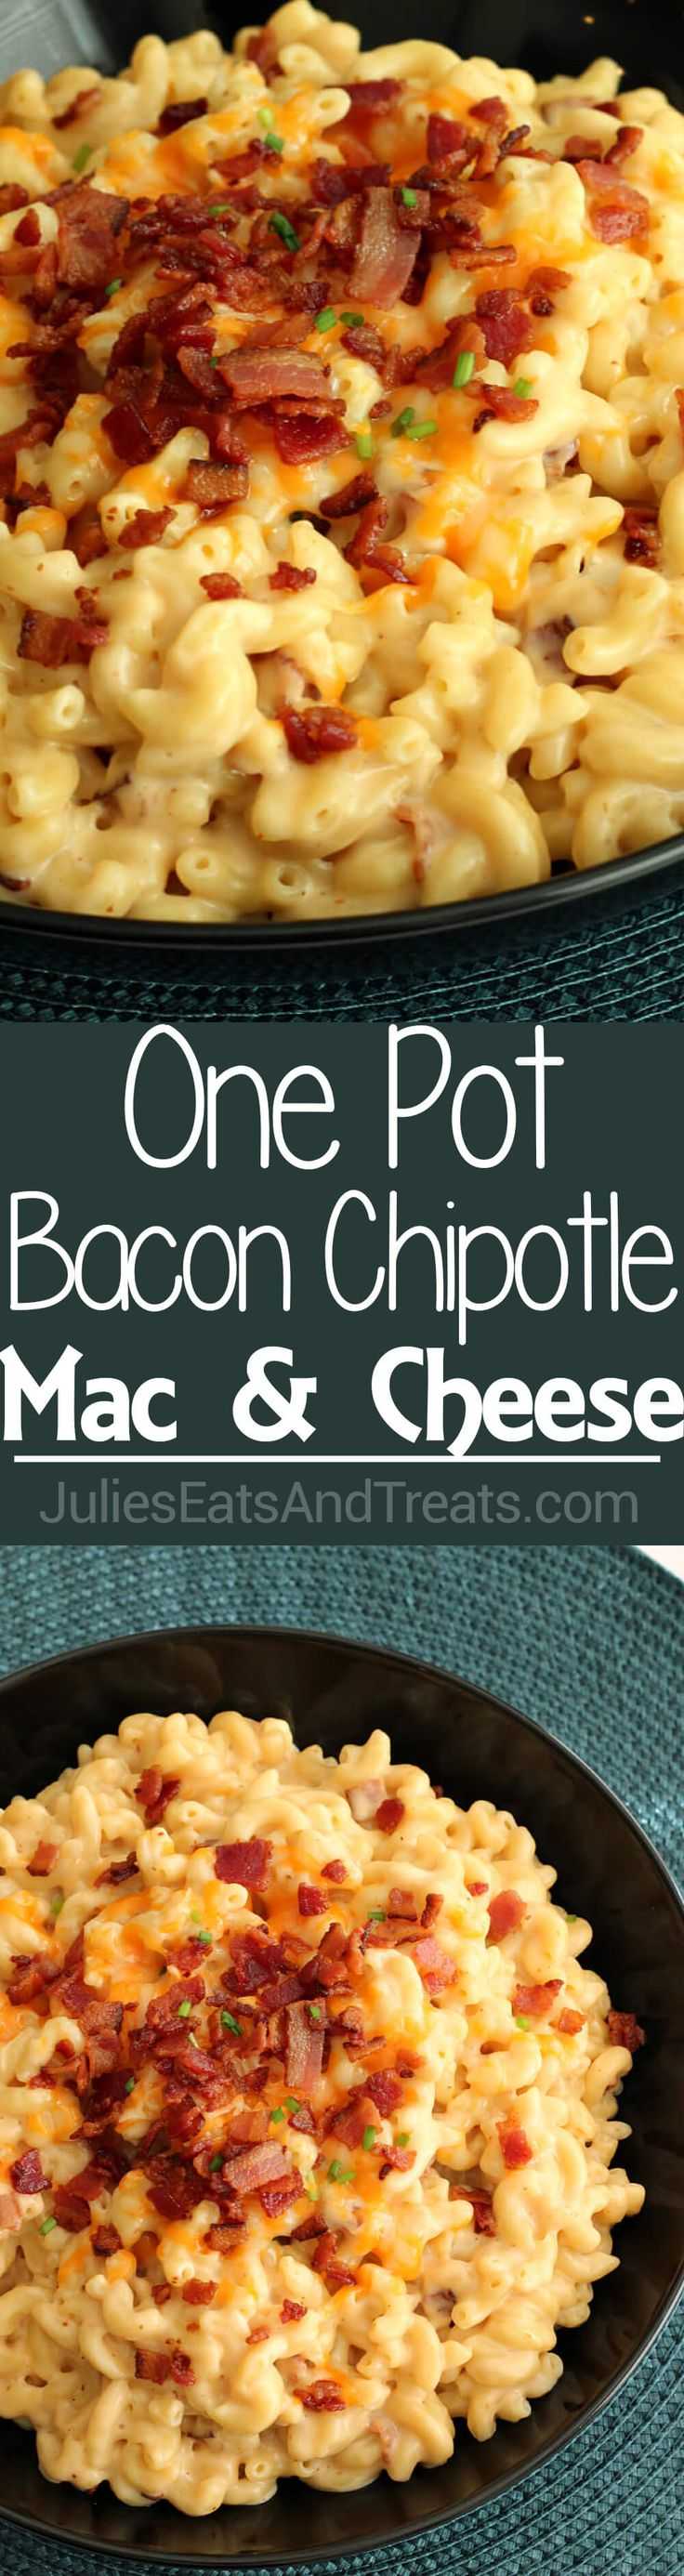 Bacon Chipotle Mac & Cheese ~ Only One Pot, 6 Ingredients and Ready in 25 Minutes!! ~ http://www.julieseatsandtreats.com